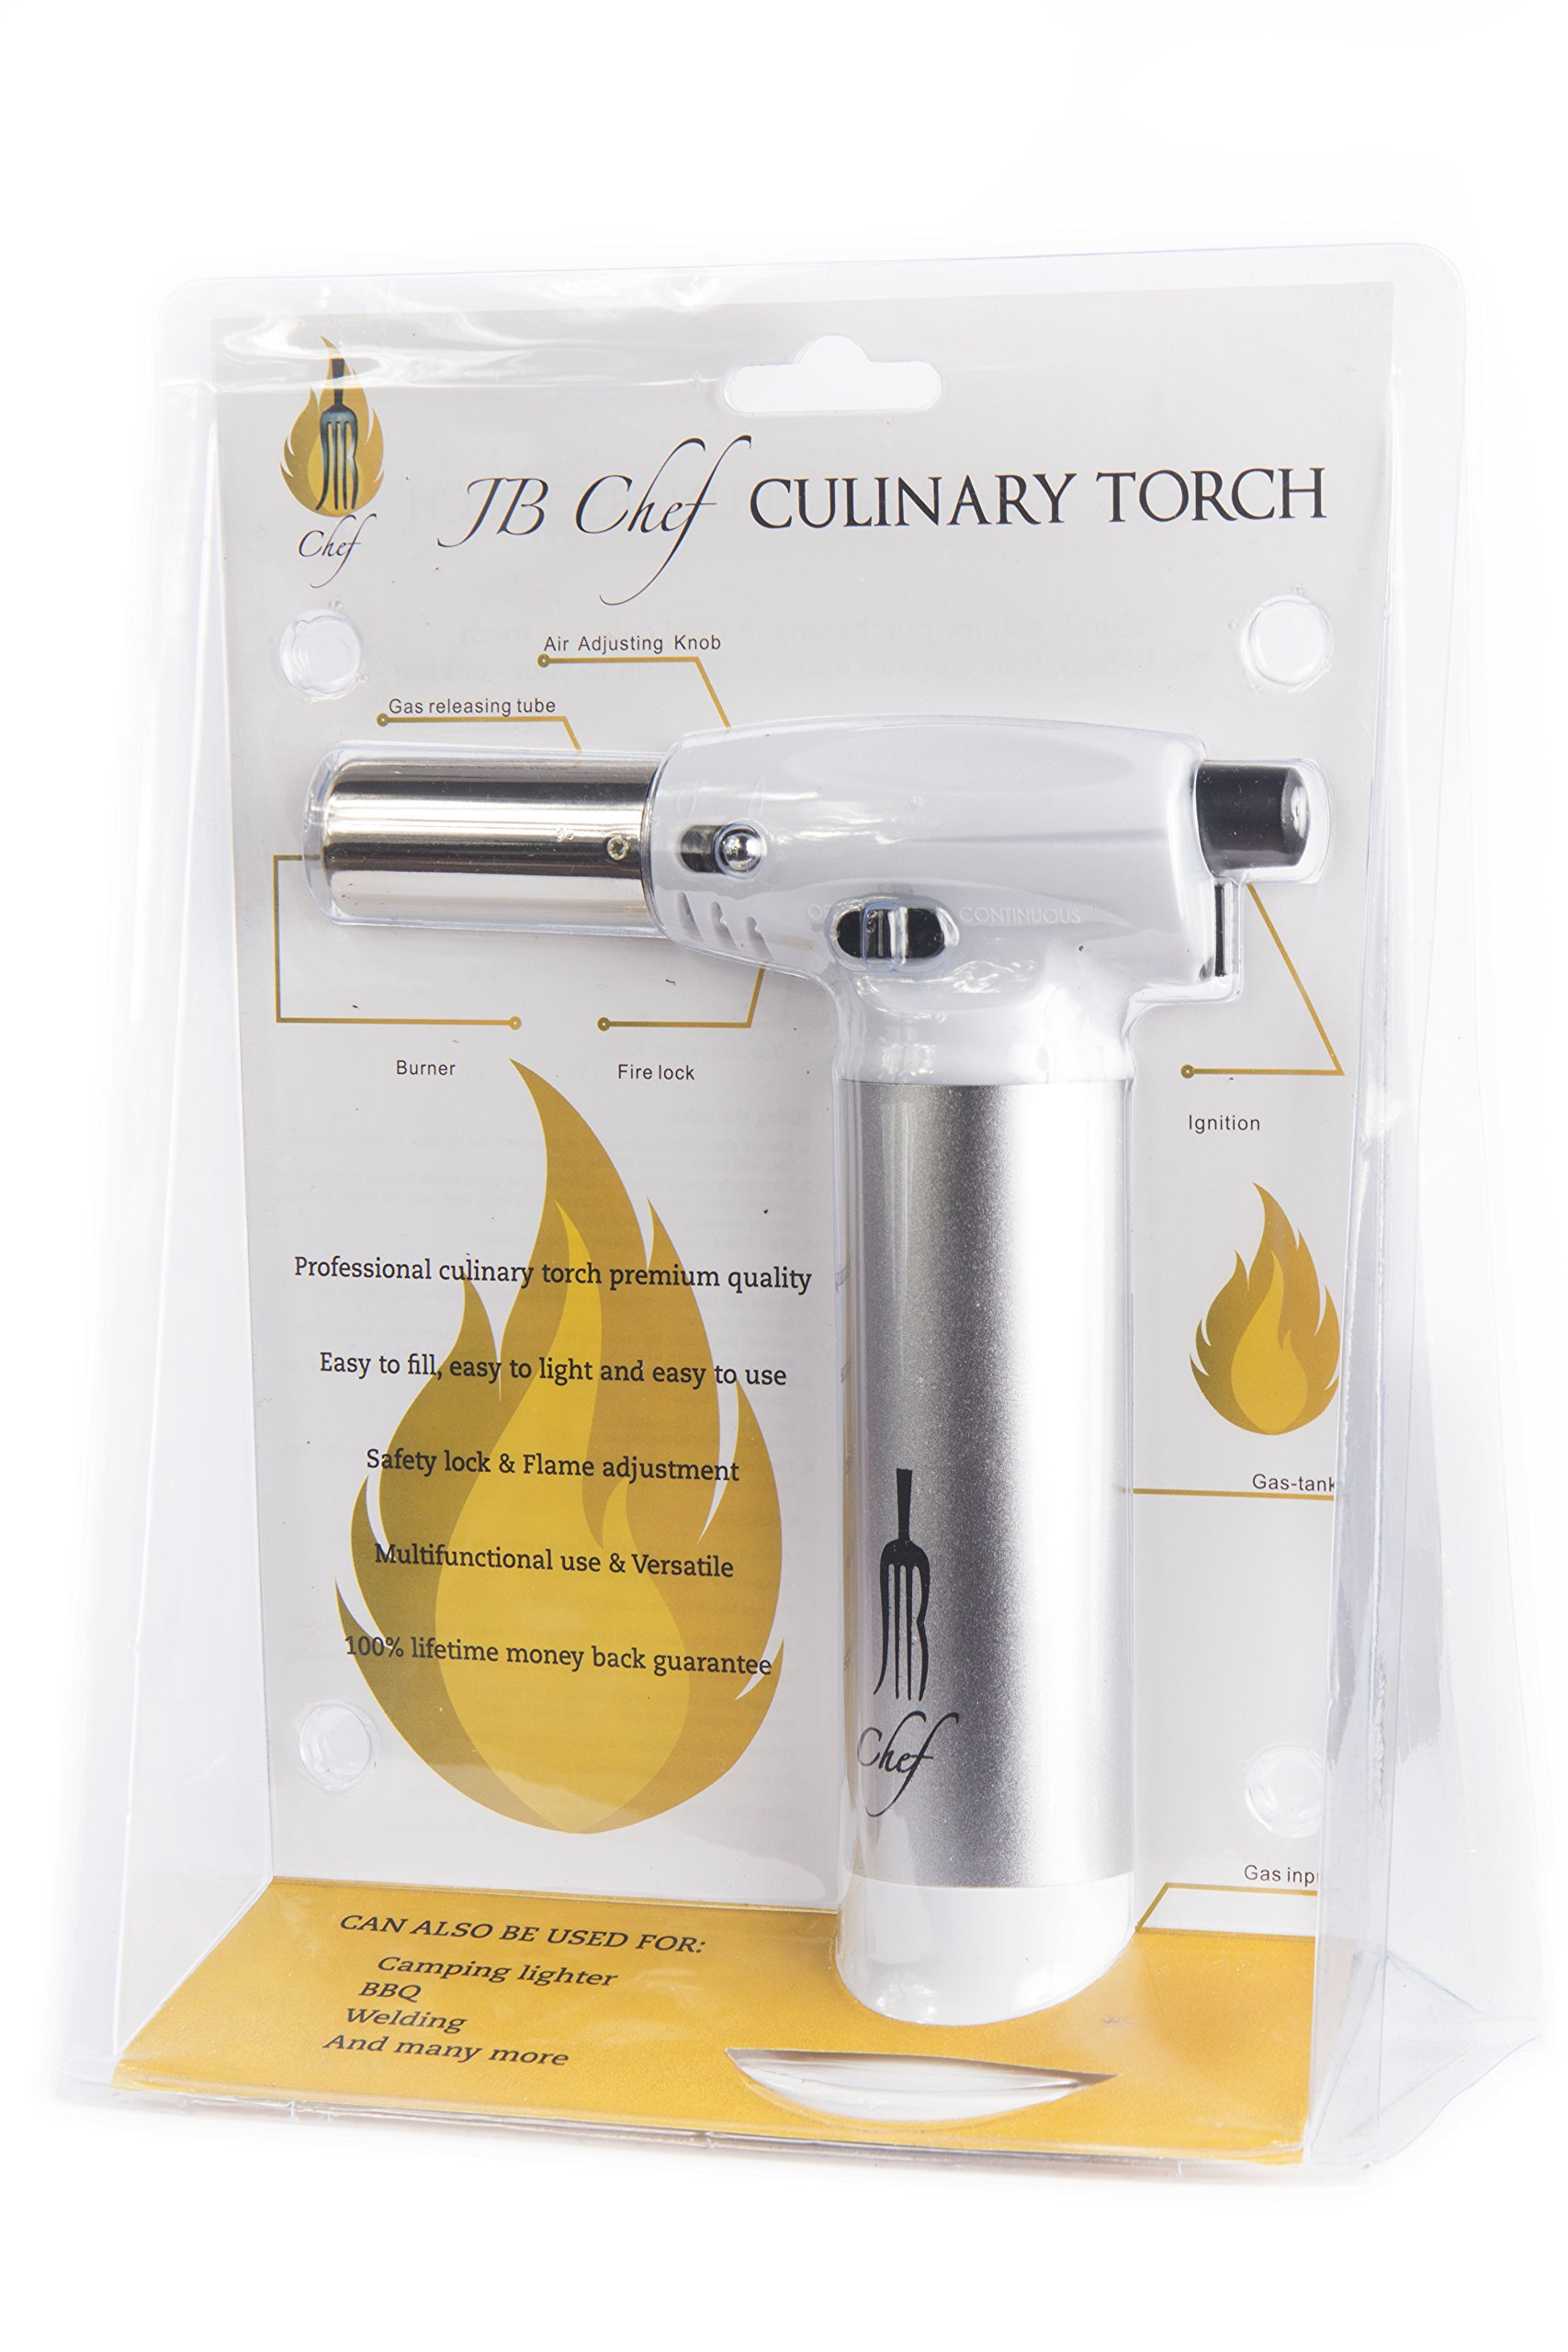 JB Chef Culinary Micro Butane Torch | Mini Torch Lighter Cooking Kitchen Blow Torch With Safety Lock & Adjustable Flame | Small Cigar Torch Lighter For Crème Brûlée, Soldering, Welding Torch & More by JB Chef (Image #8)